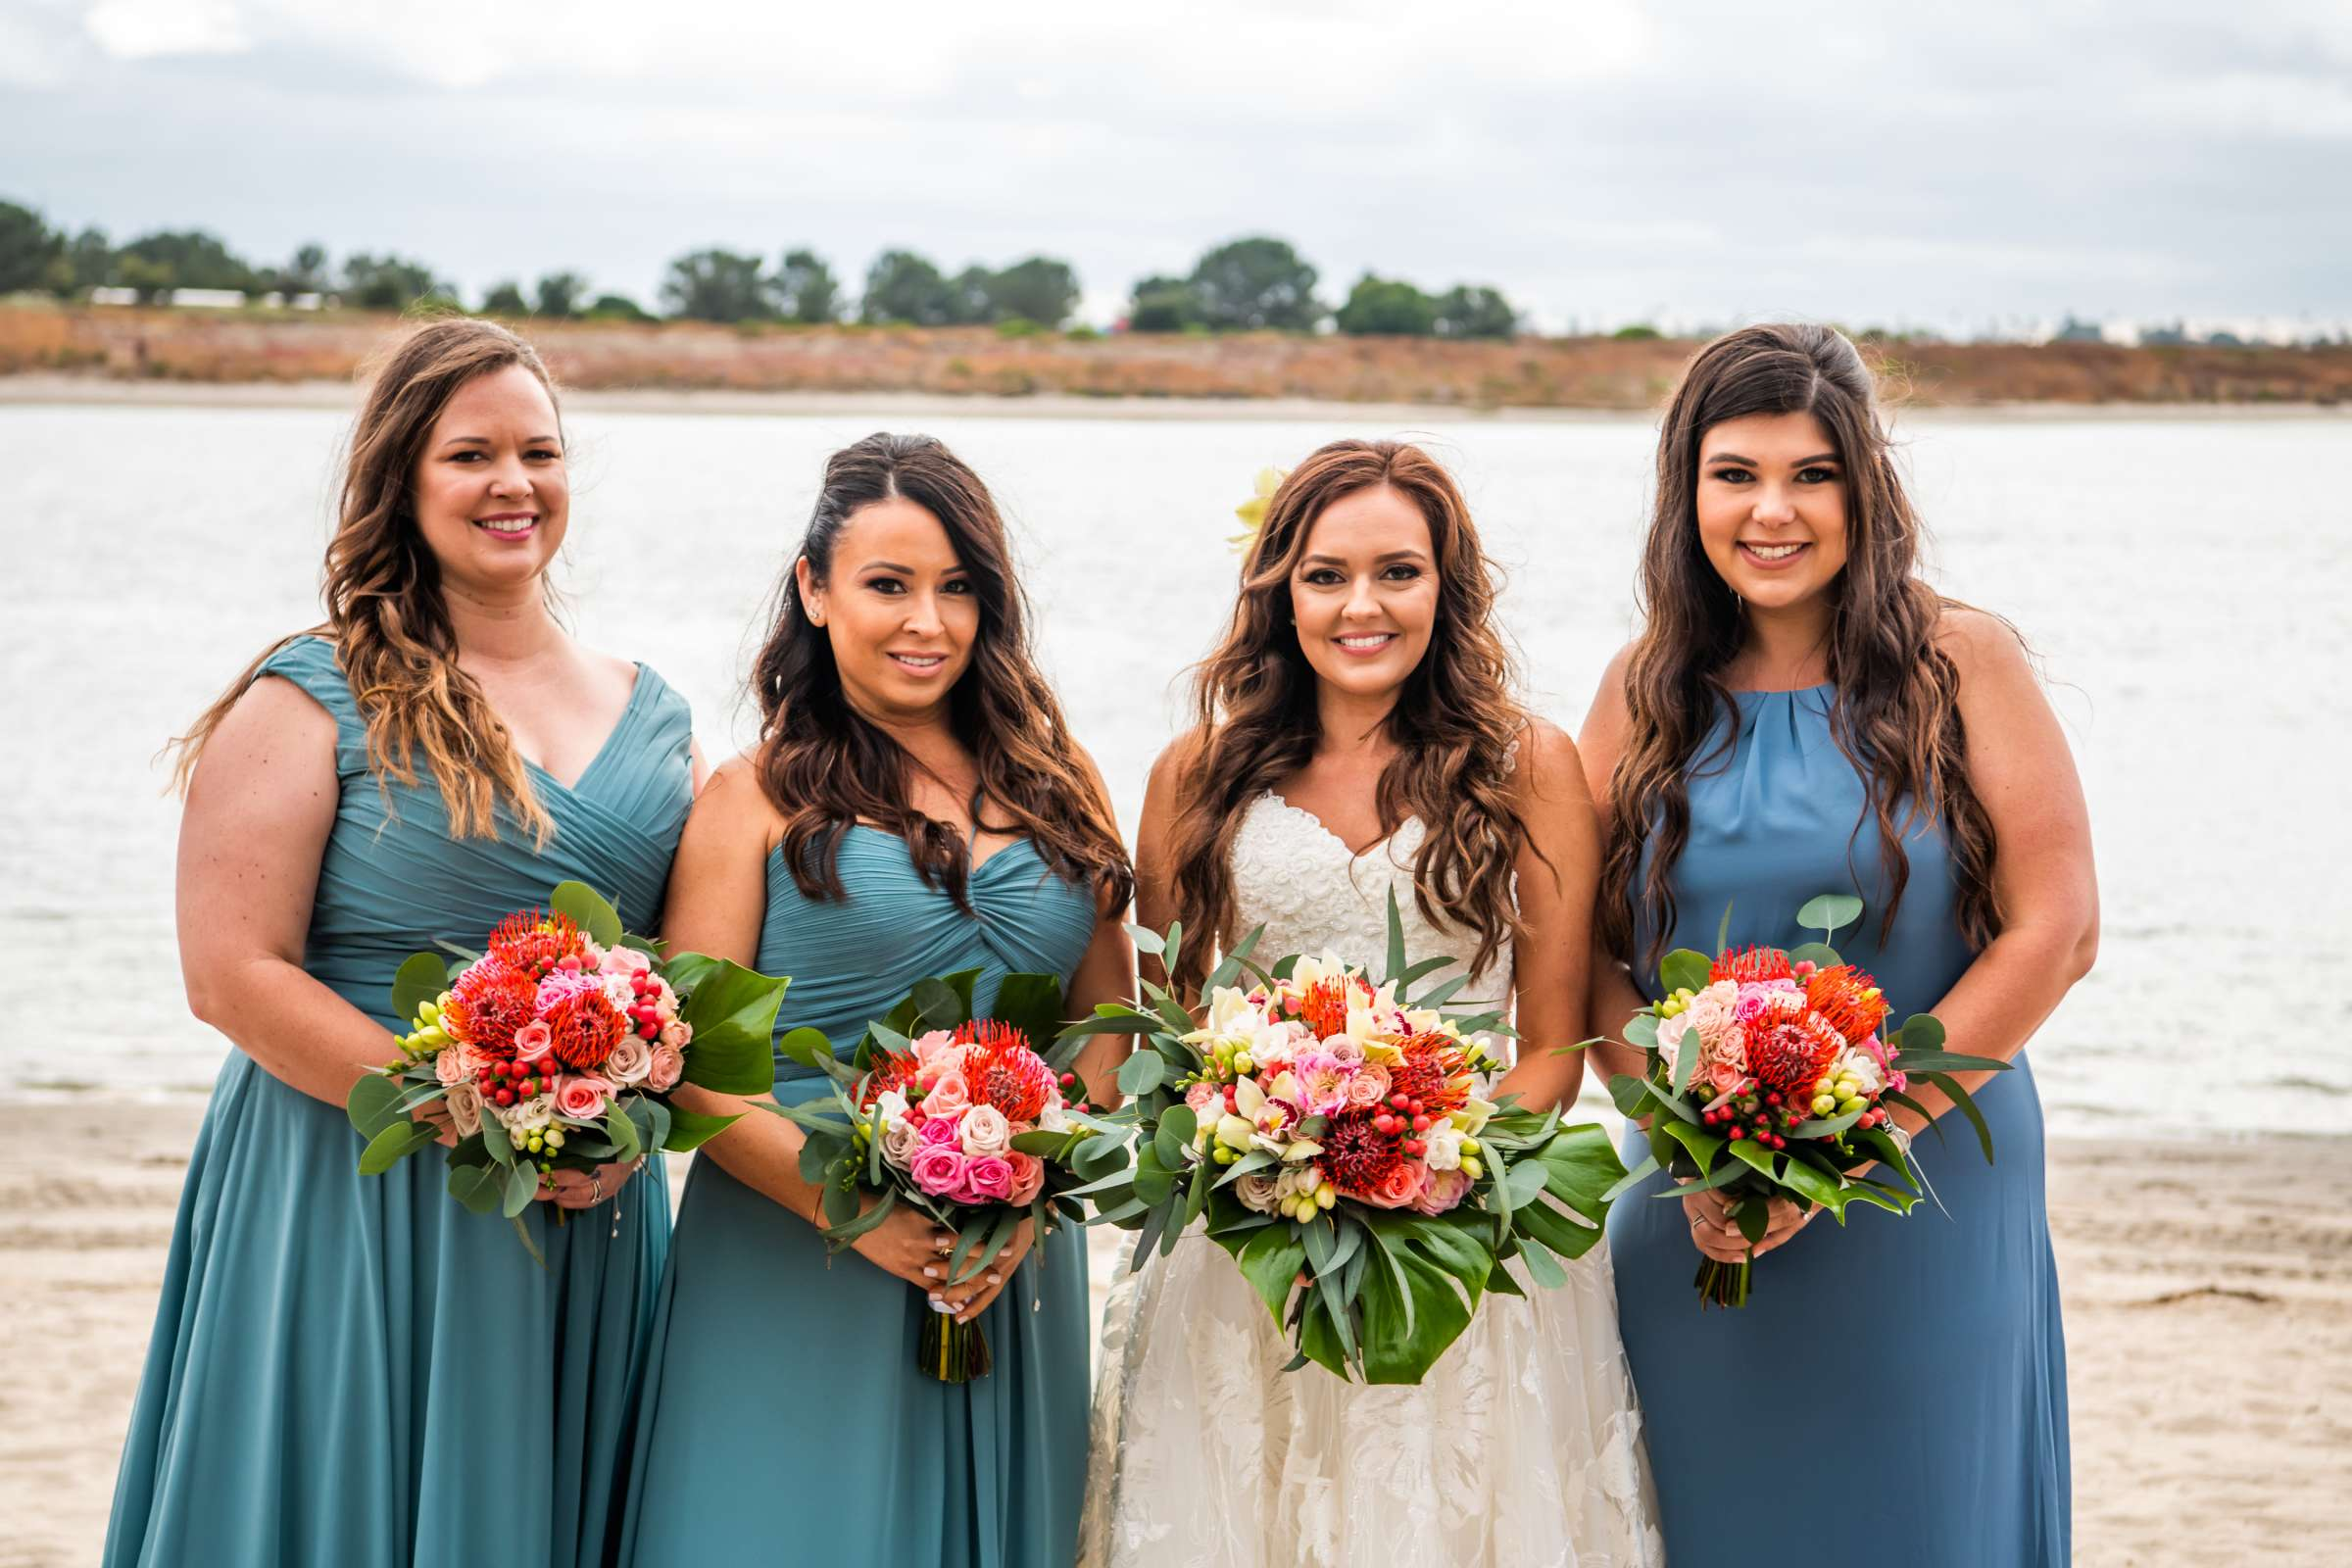 San Diego Mission Bay Resort Wedding coordinated by Cafe Au Love, Lauren and Adam Wedding Photo #104 by True Photography